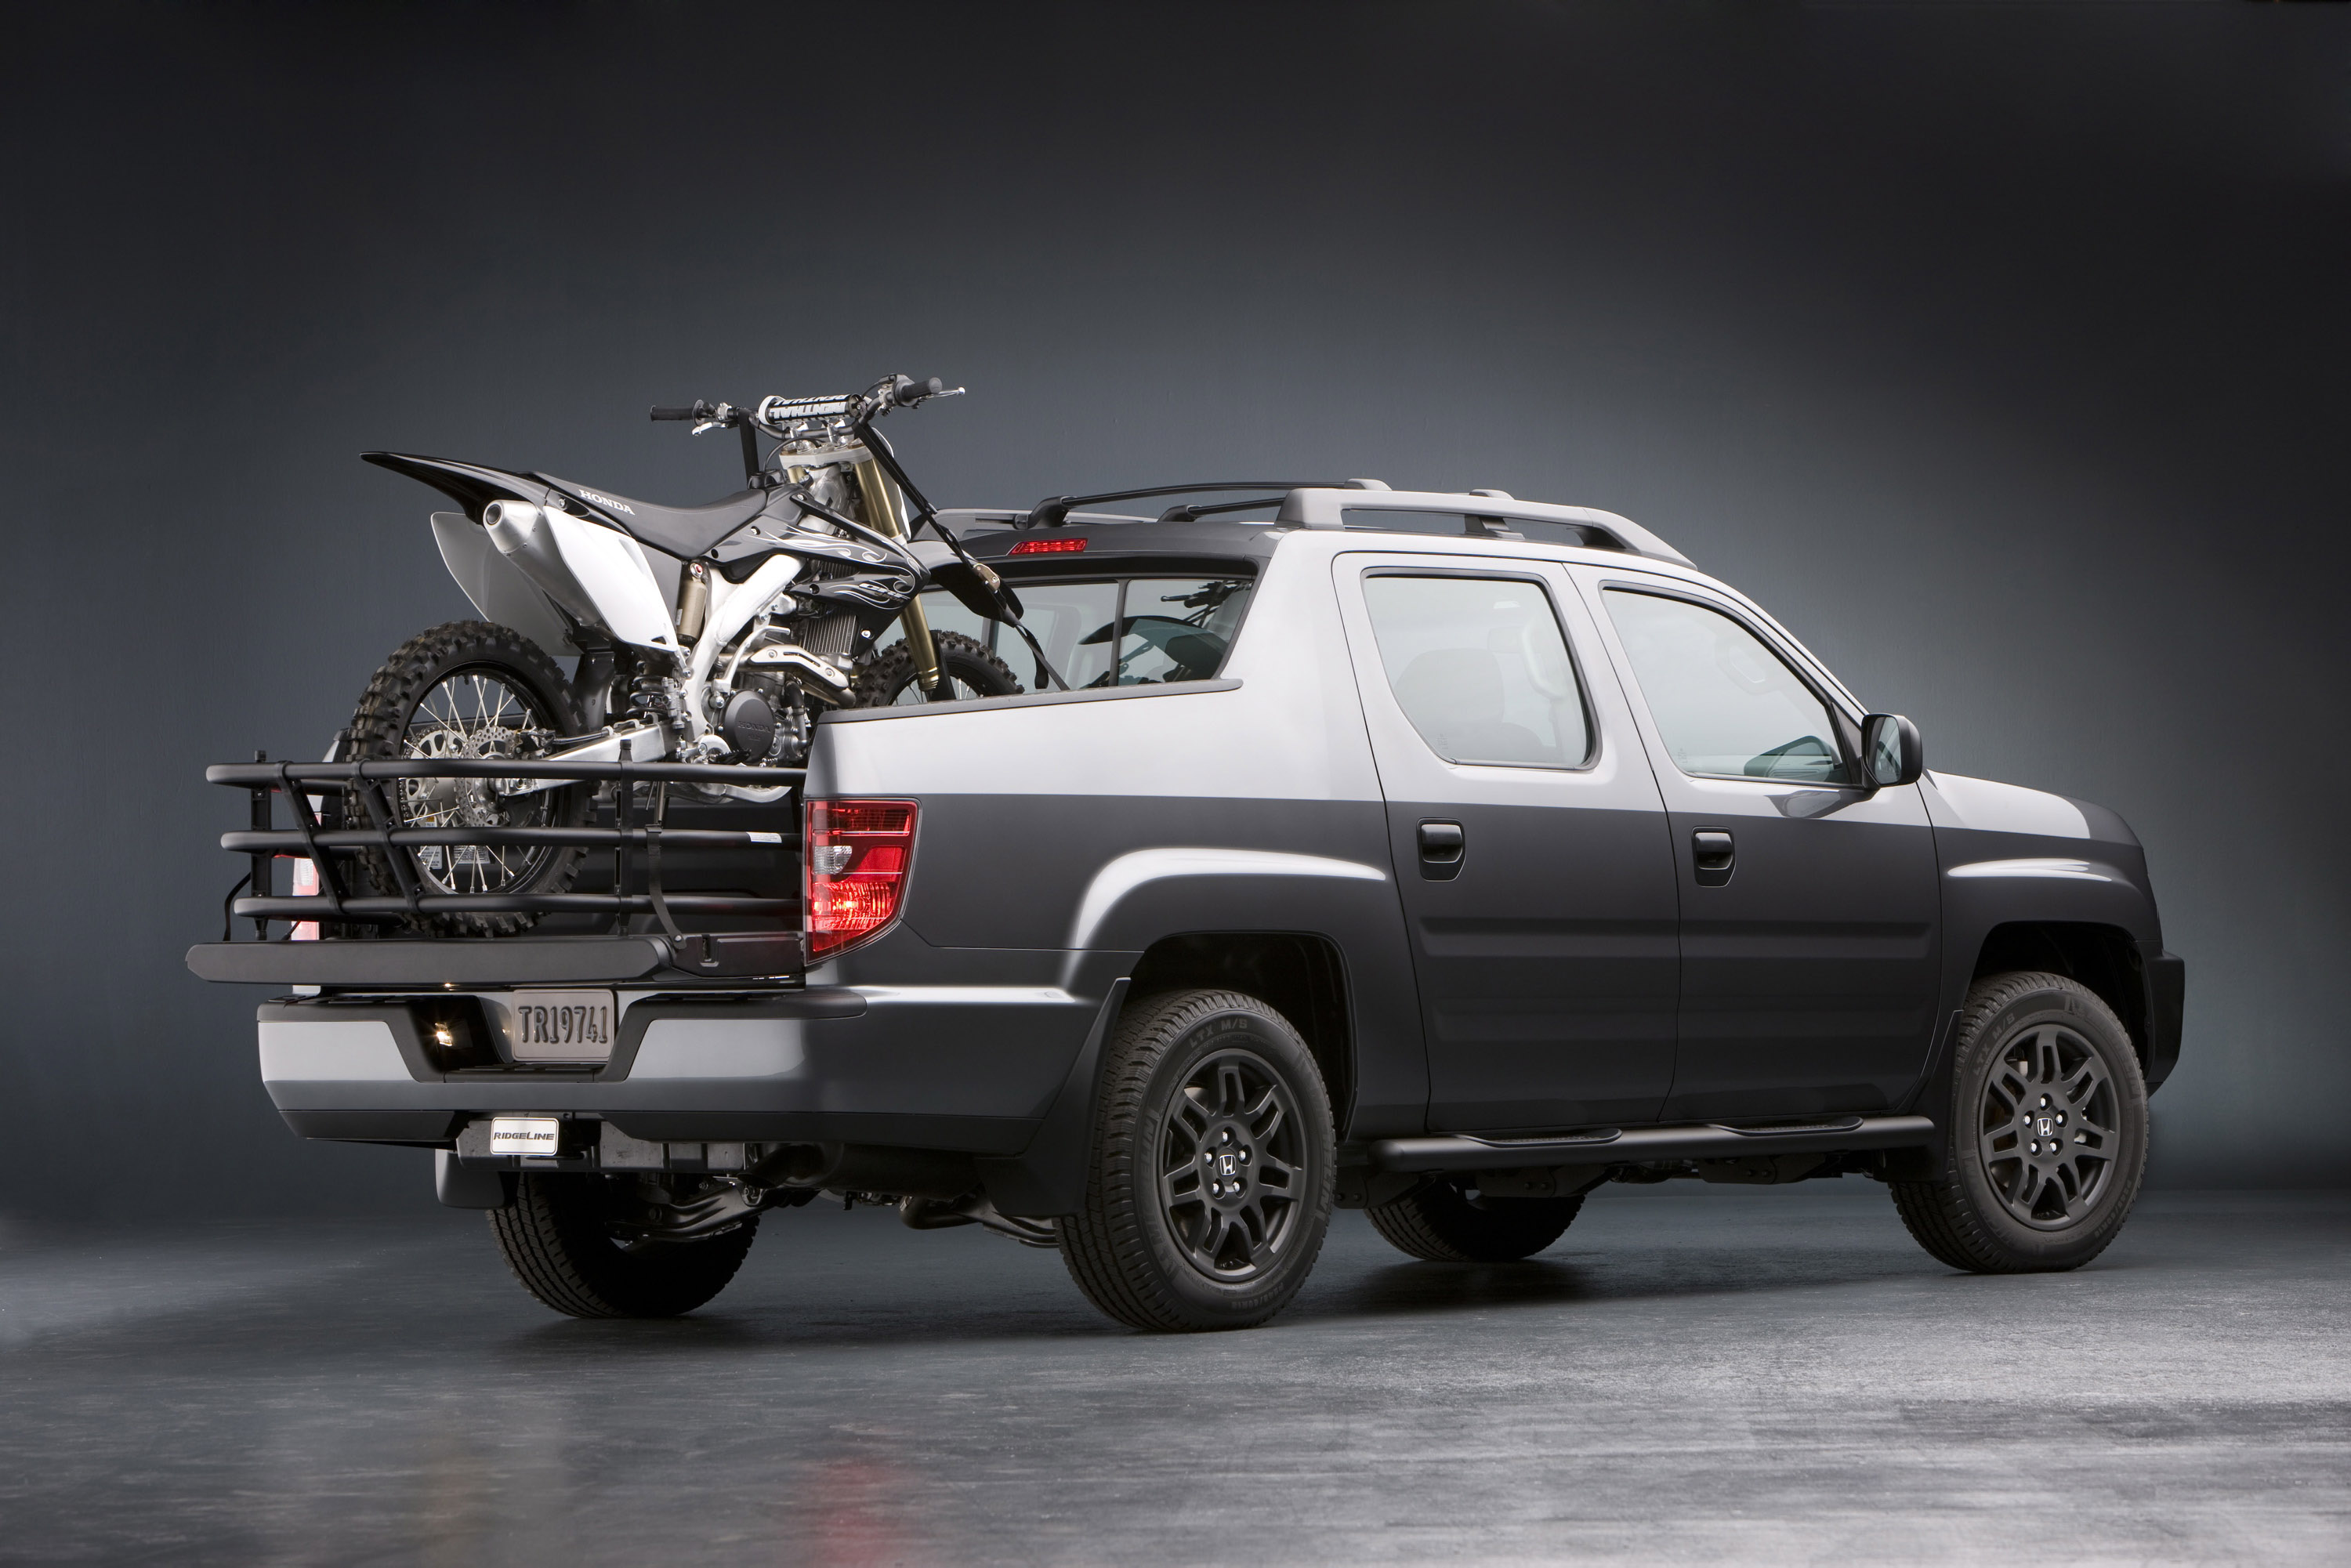 Honda Reveals Accessory Concepts for Civic and Ridgeline ...